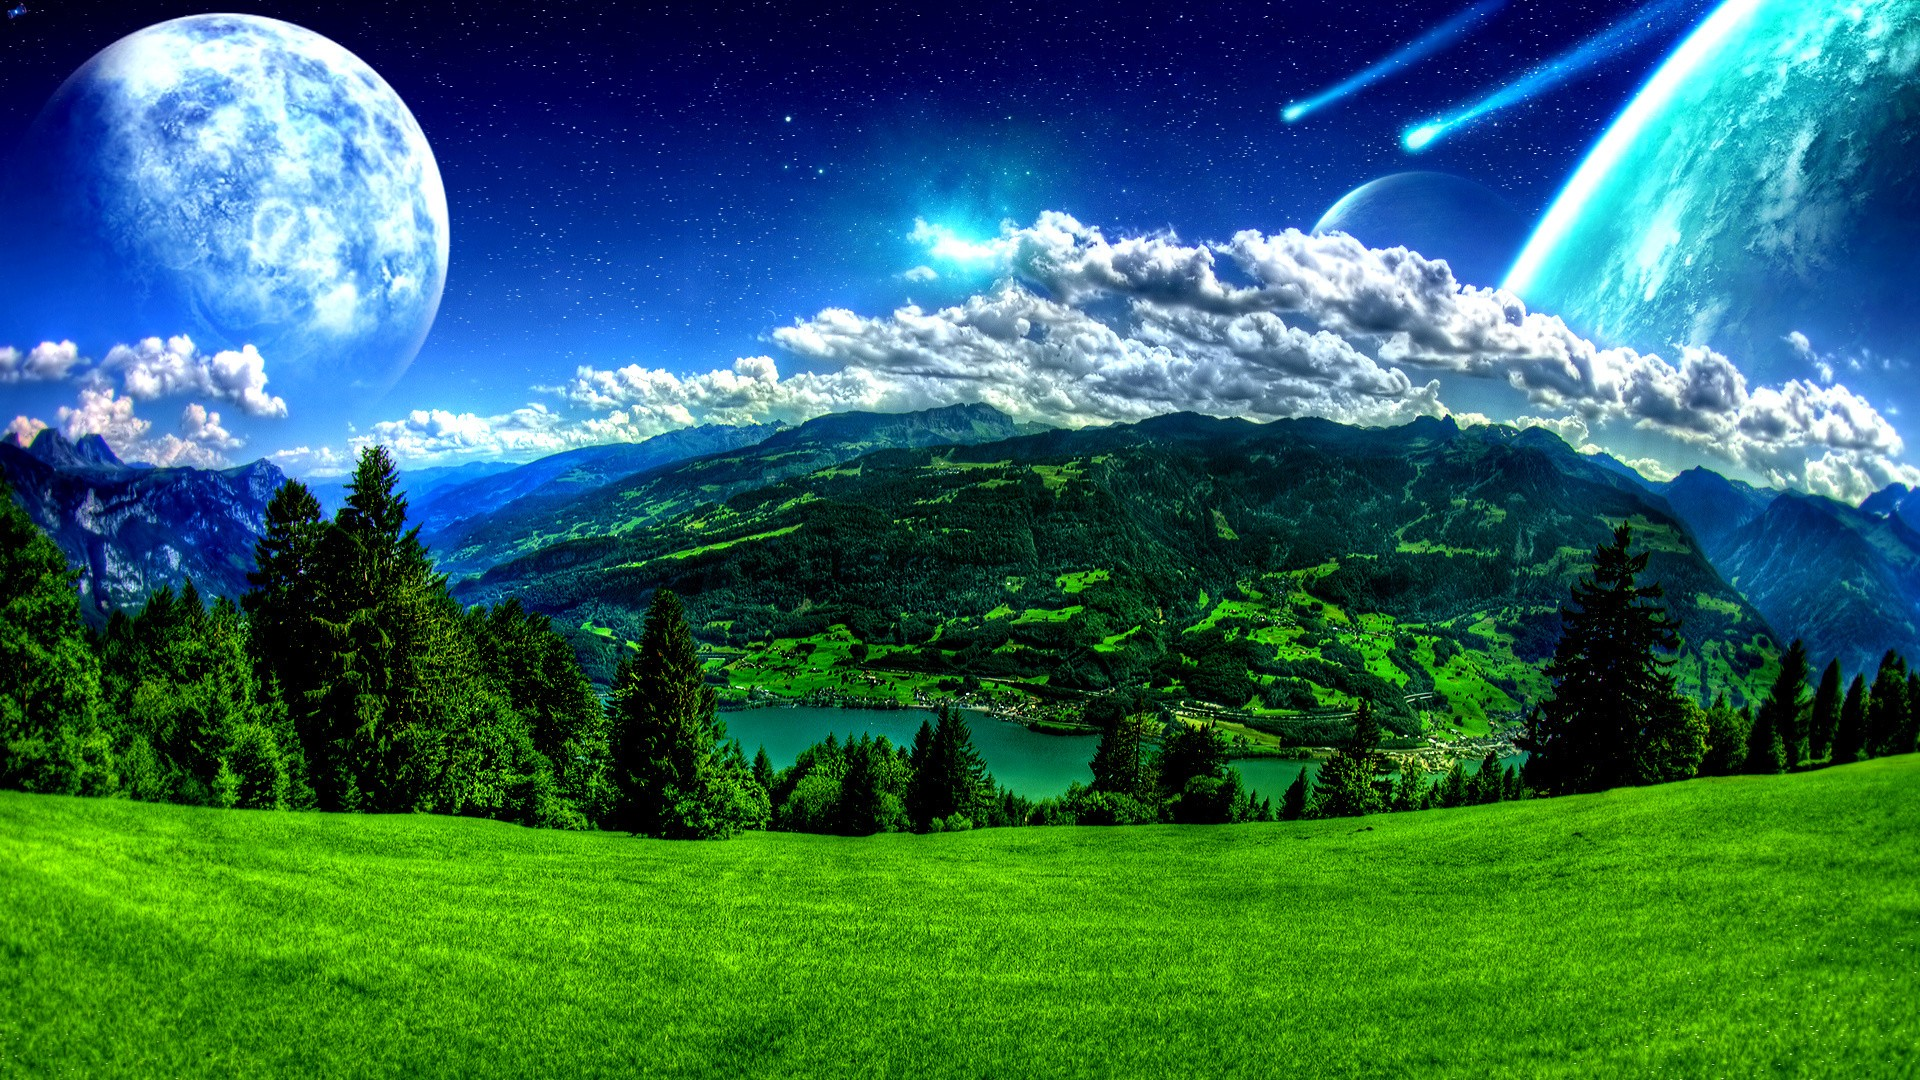 space 1080p wallpaper landscape - photo #35